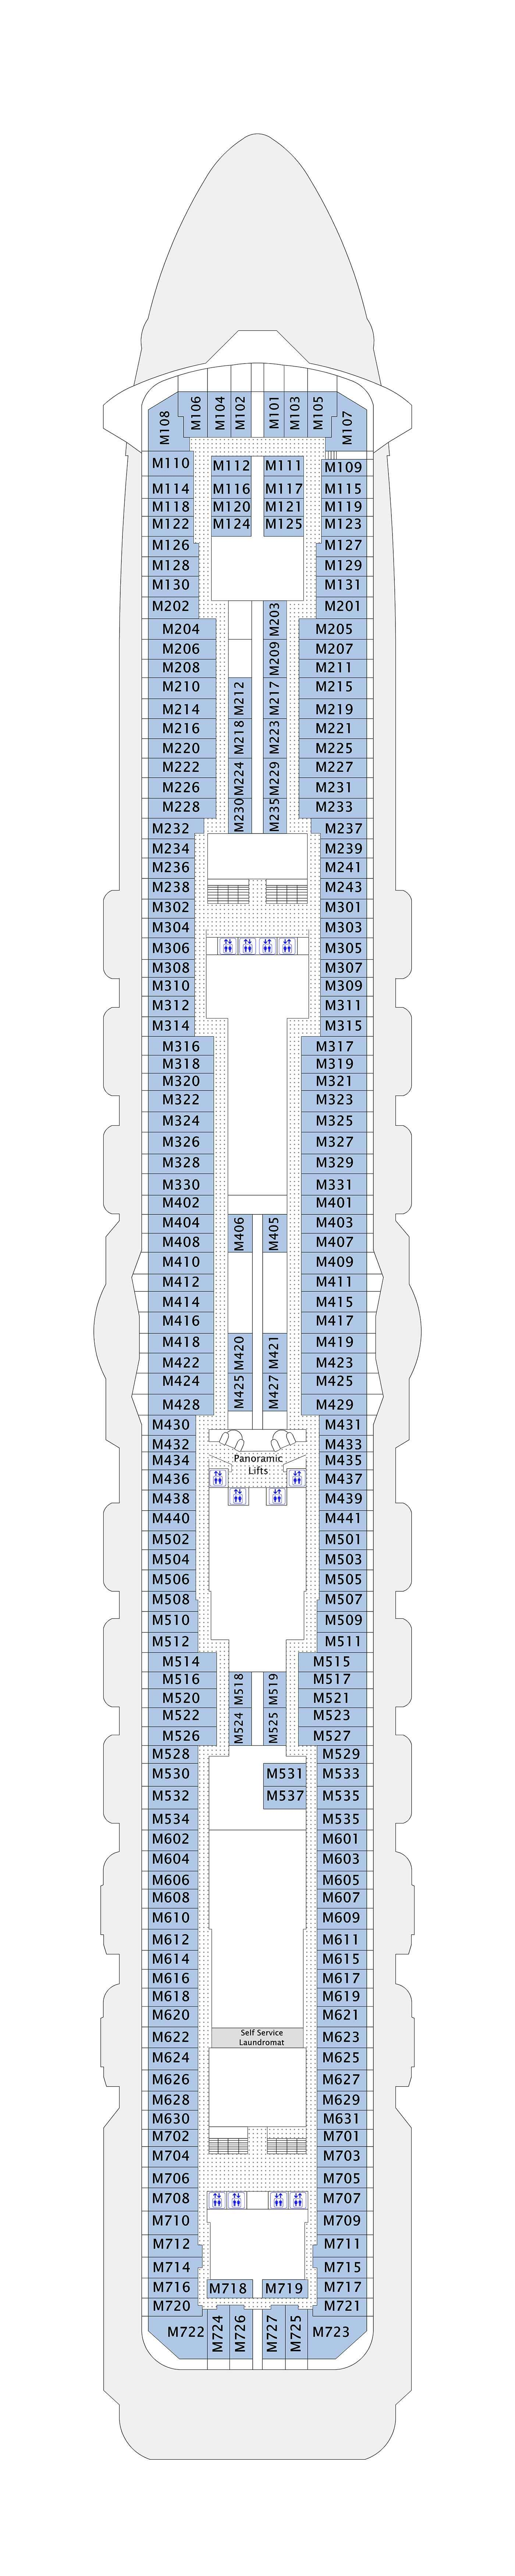 Majestic Princess deck plan 15